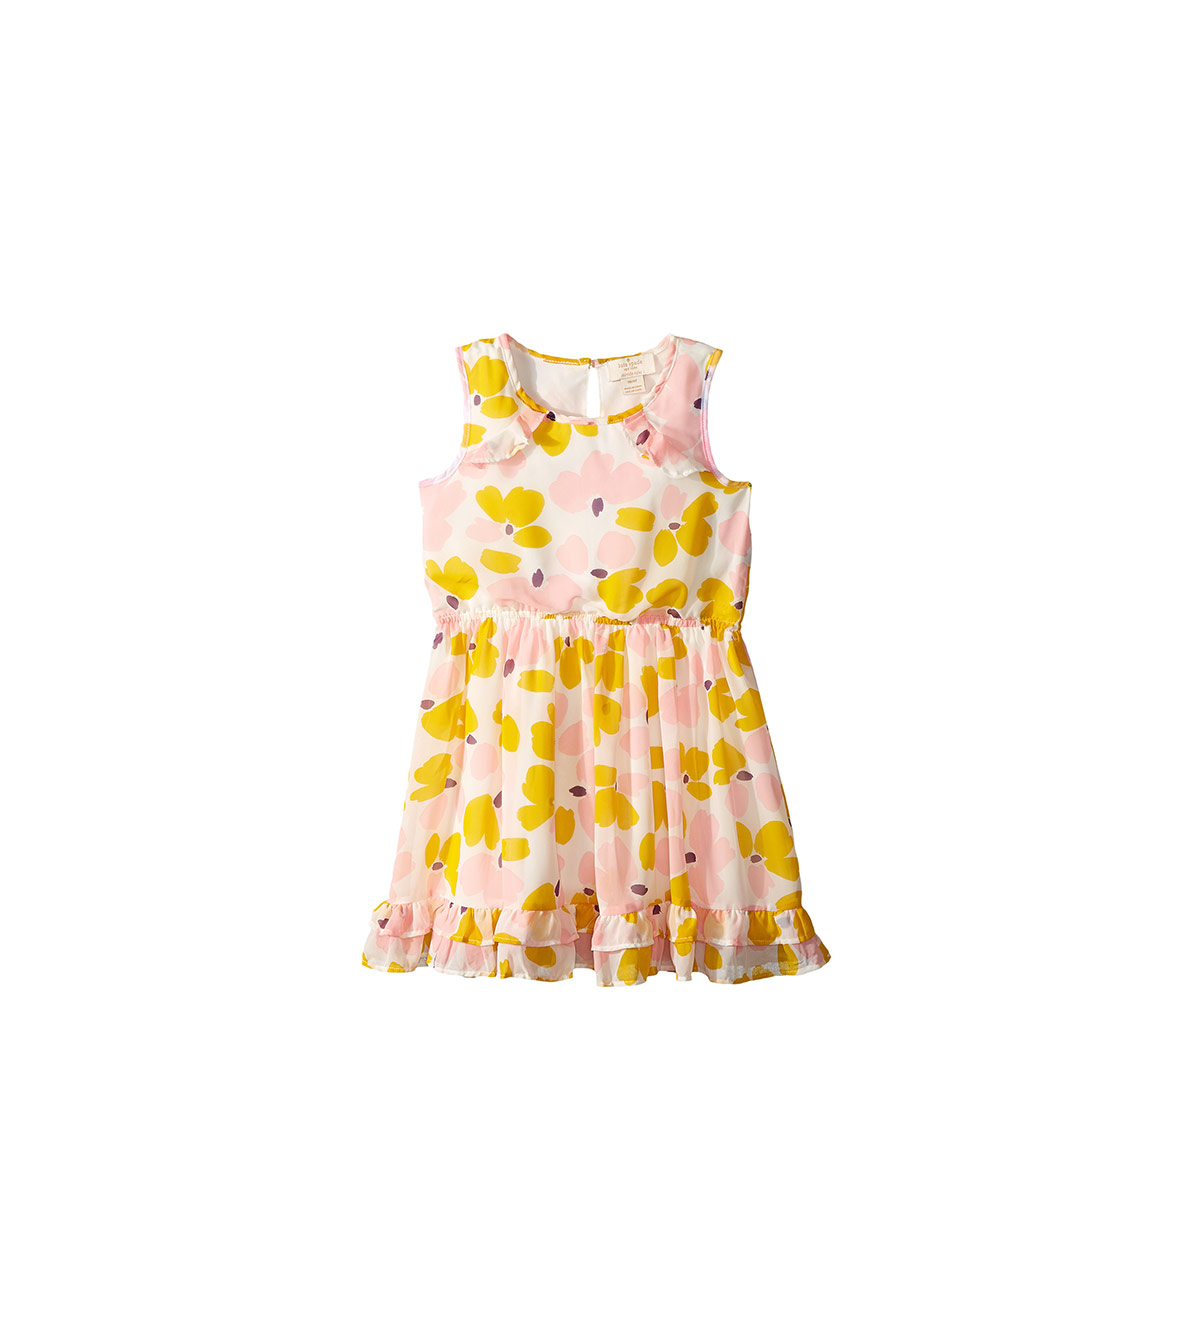 Kate Spade New York Kids Ruffled Hem Dress